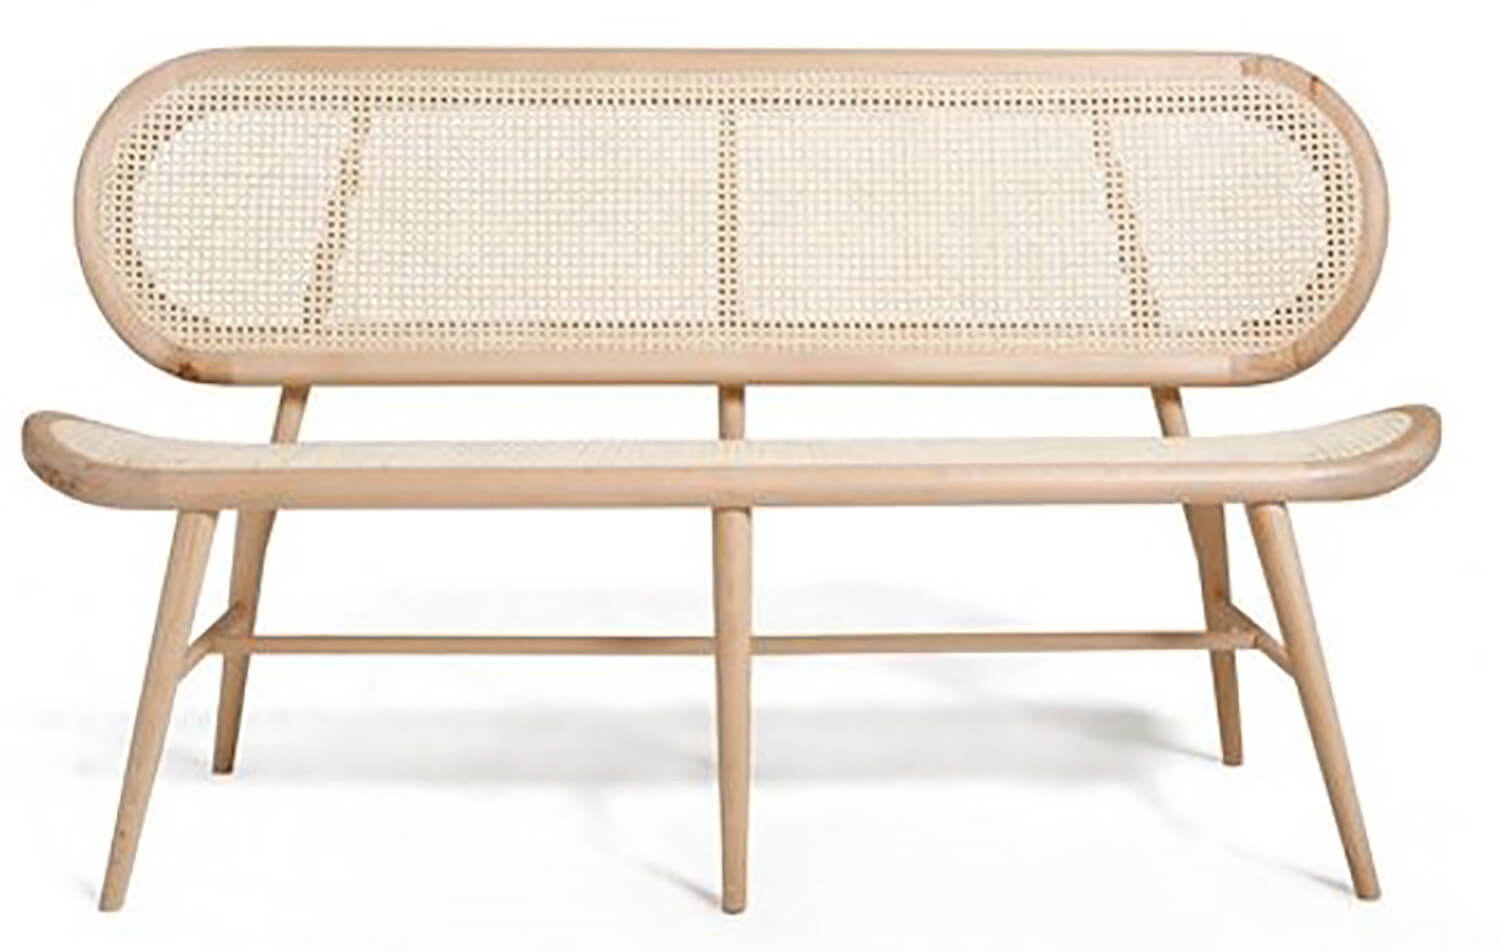 Est Living Wickedly Wickered Andreu Carulla Studio Bernandes Bench